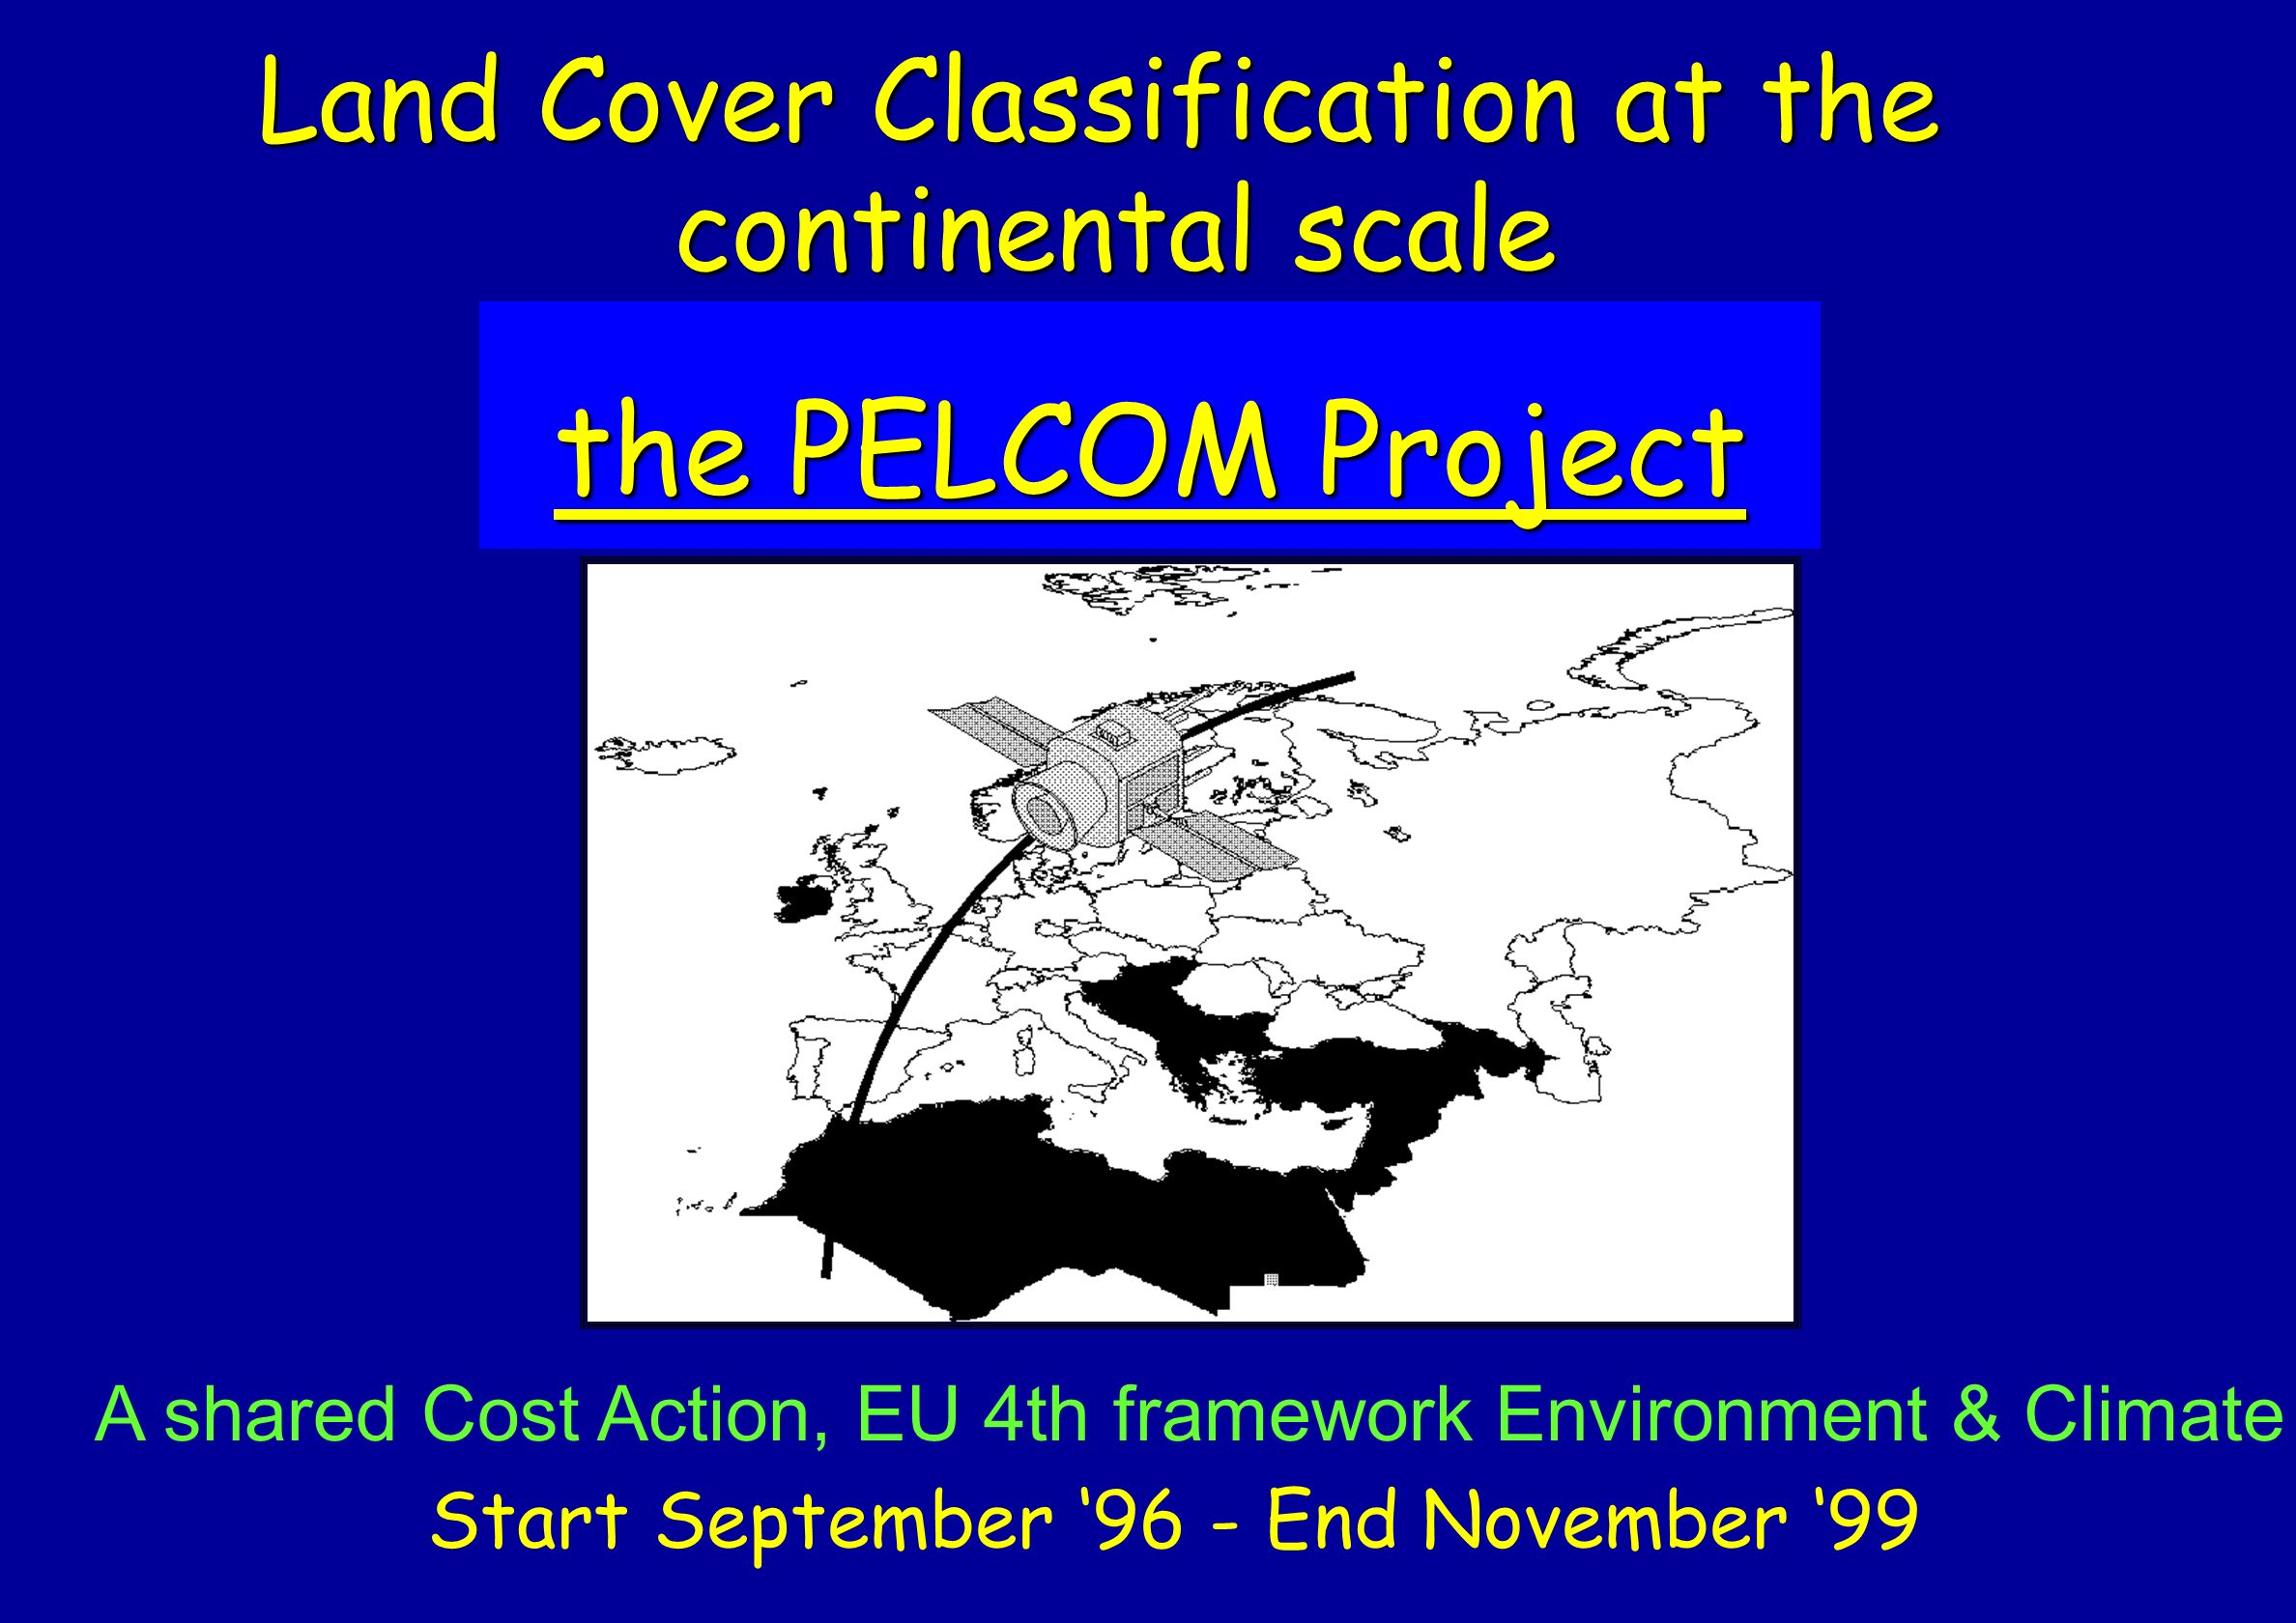 Land Cover Classification at the continental scale the PELCOM Project the PELCOM Project A shared Cost Action, EU 4th framework Environment & Climate Start September 96 - End November 99